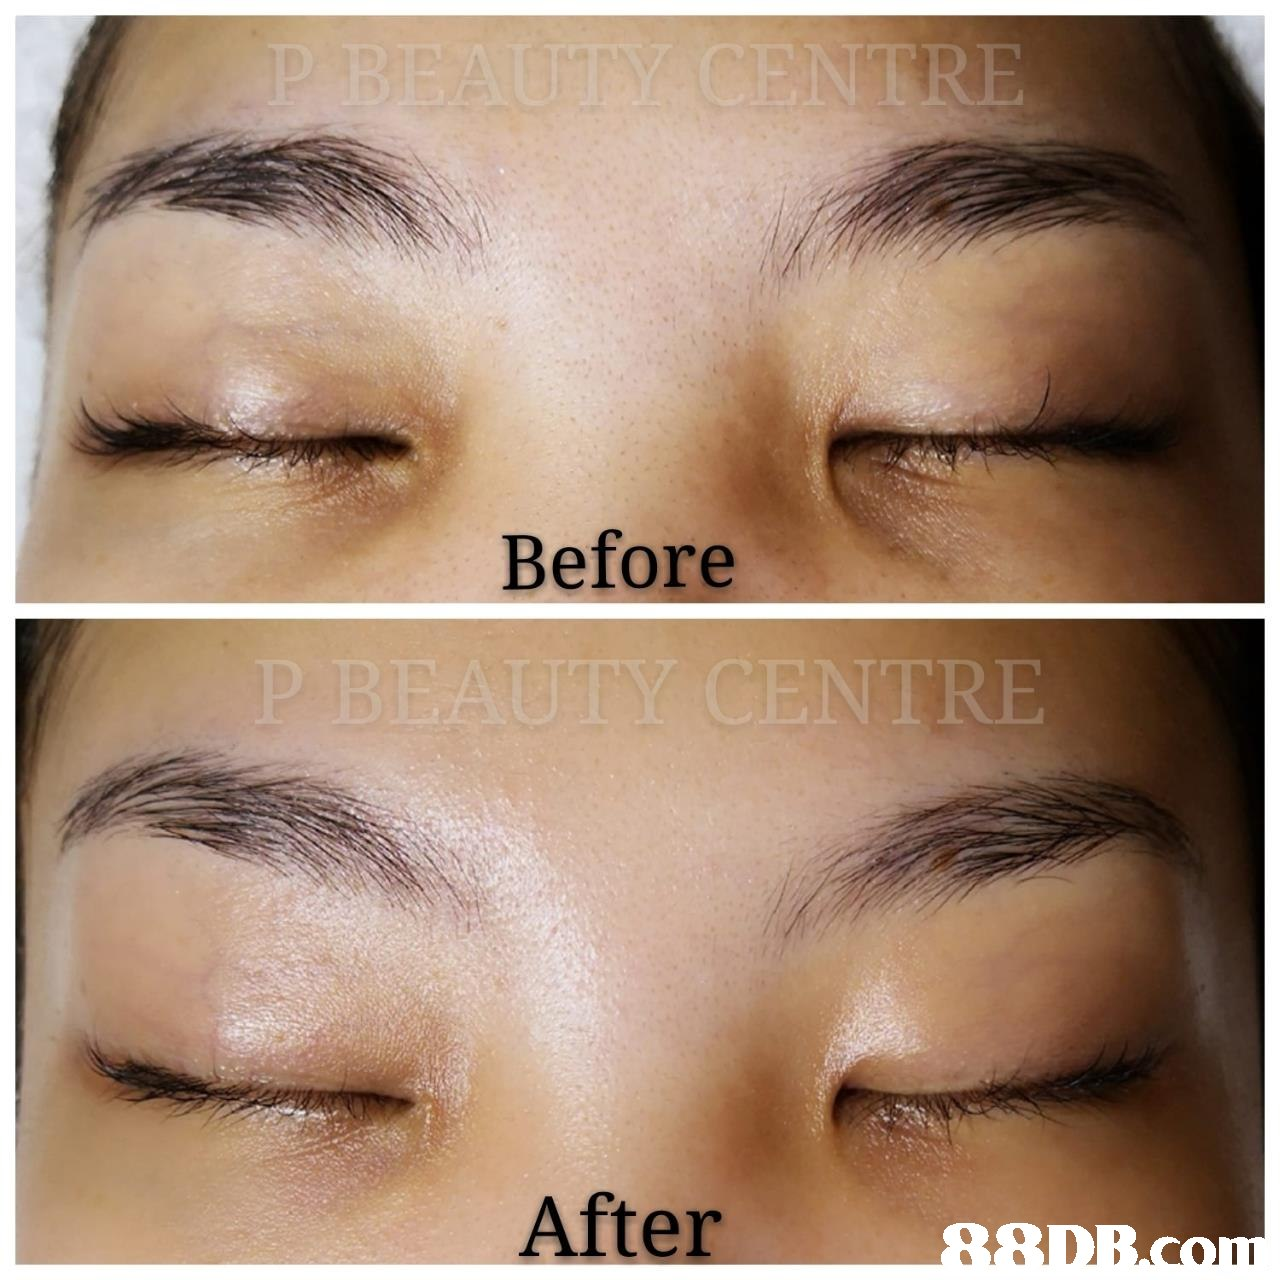 Before NTRE After  Eyebrow,Face,Skin,Forehead,Eyelash